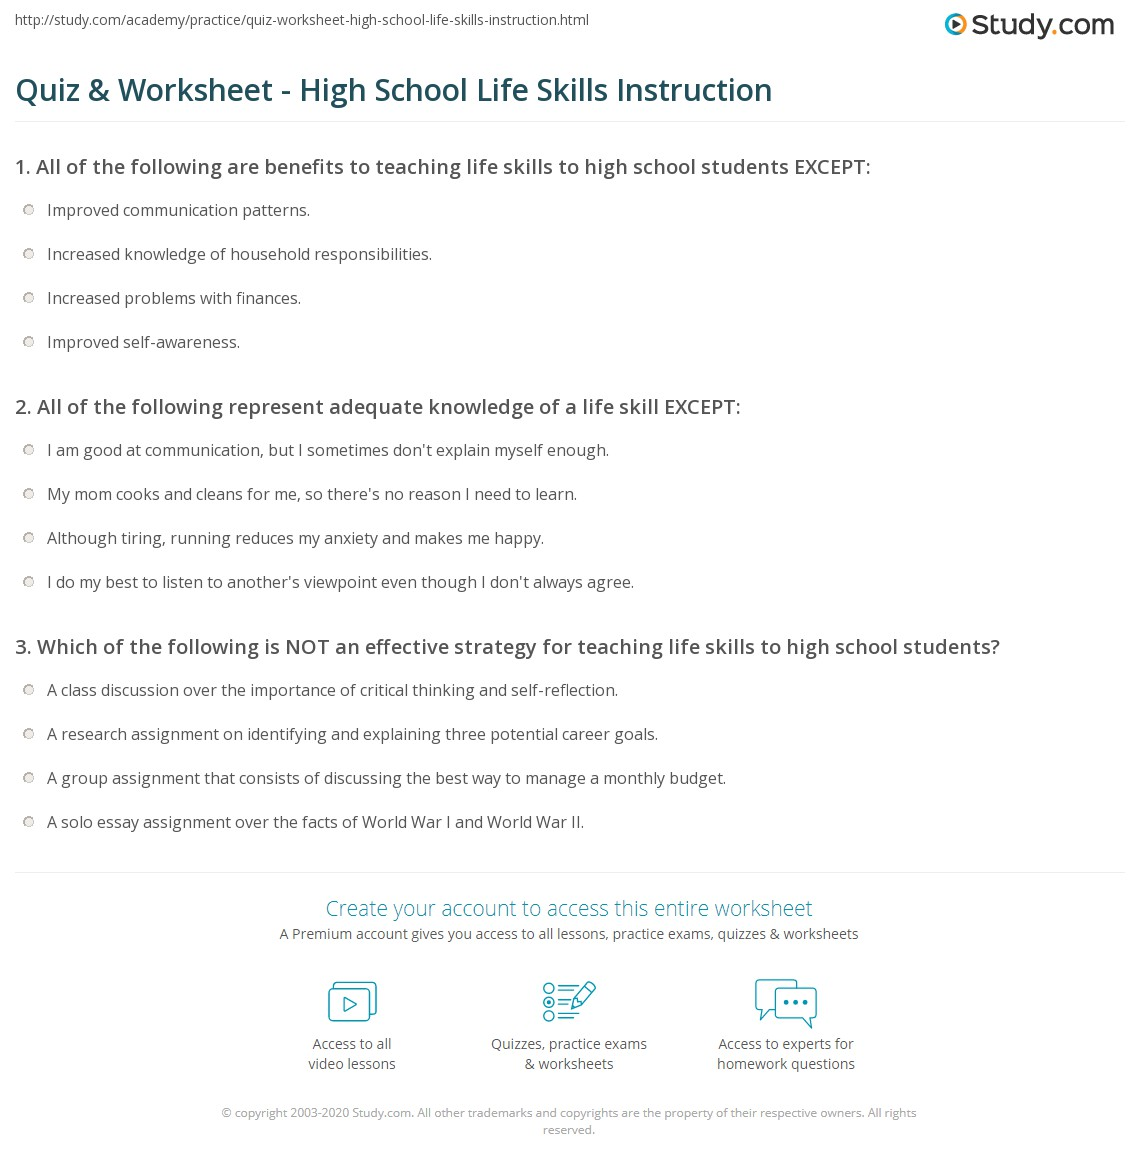 quiz worksheet high school life skills instruction. Black Bedroom Furniture Sets. Home Design Ideas